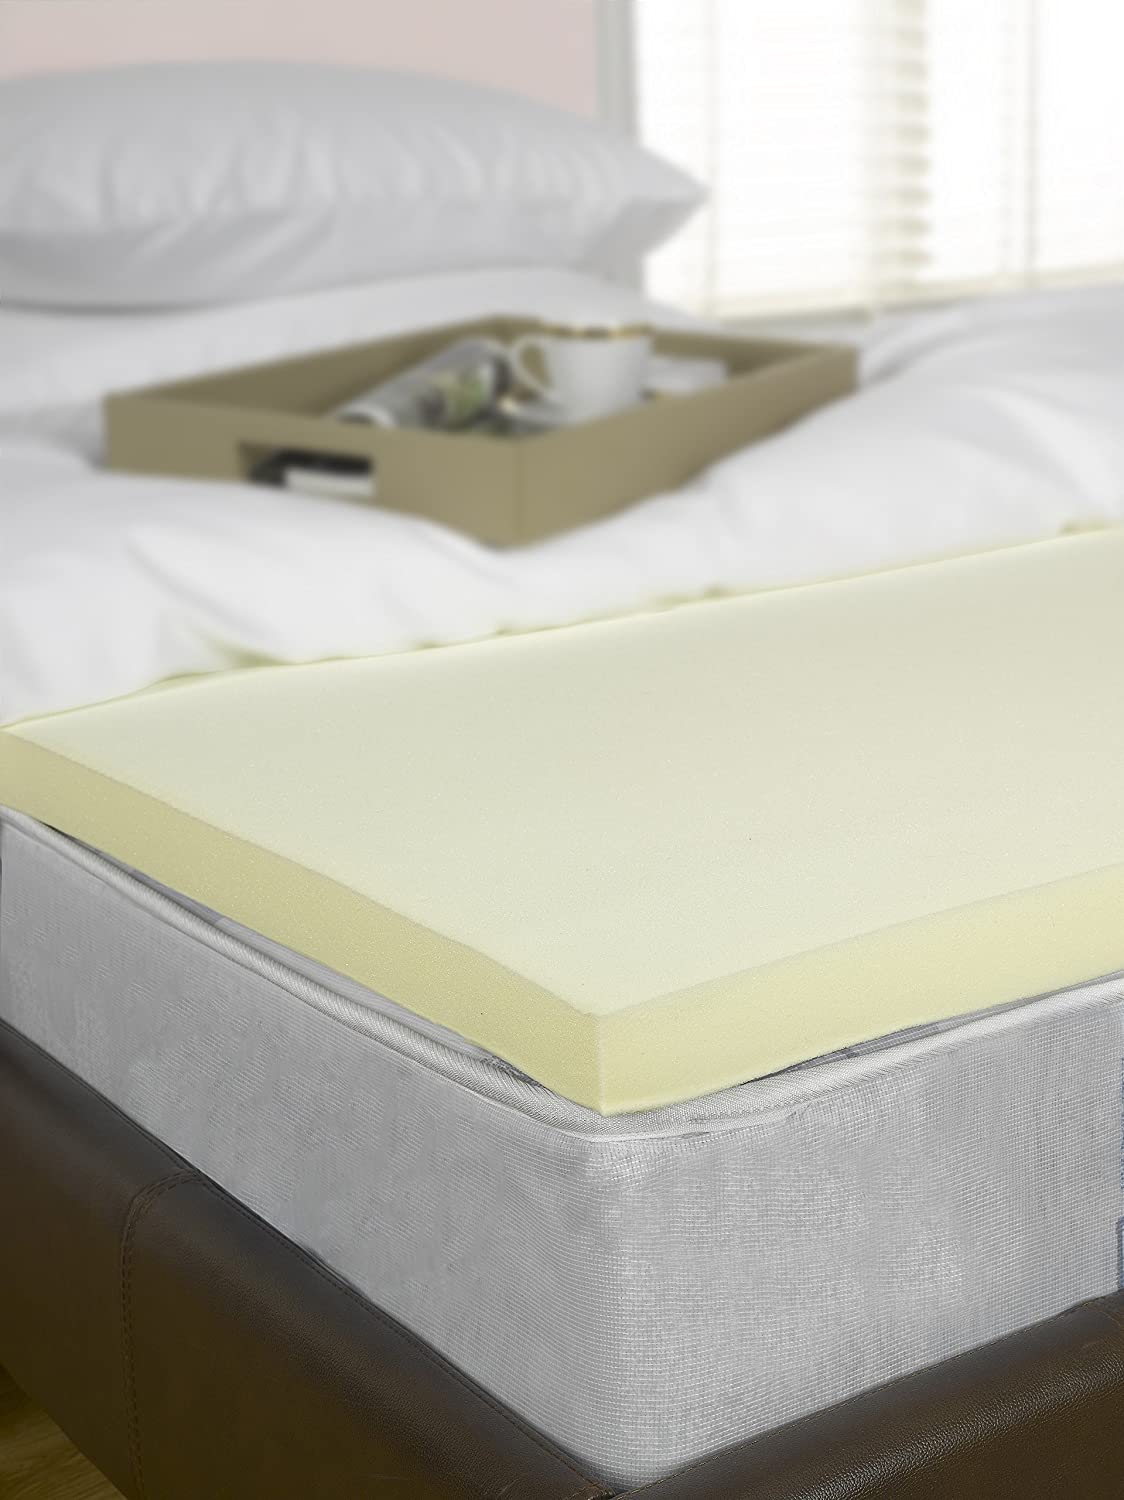 Memory Foam Mattress Topper, 3 inch - UK King Size: Amazon.co.uk: Kitchen &  Home